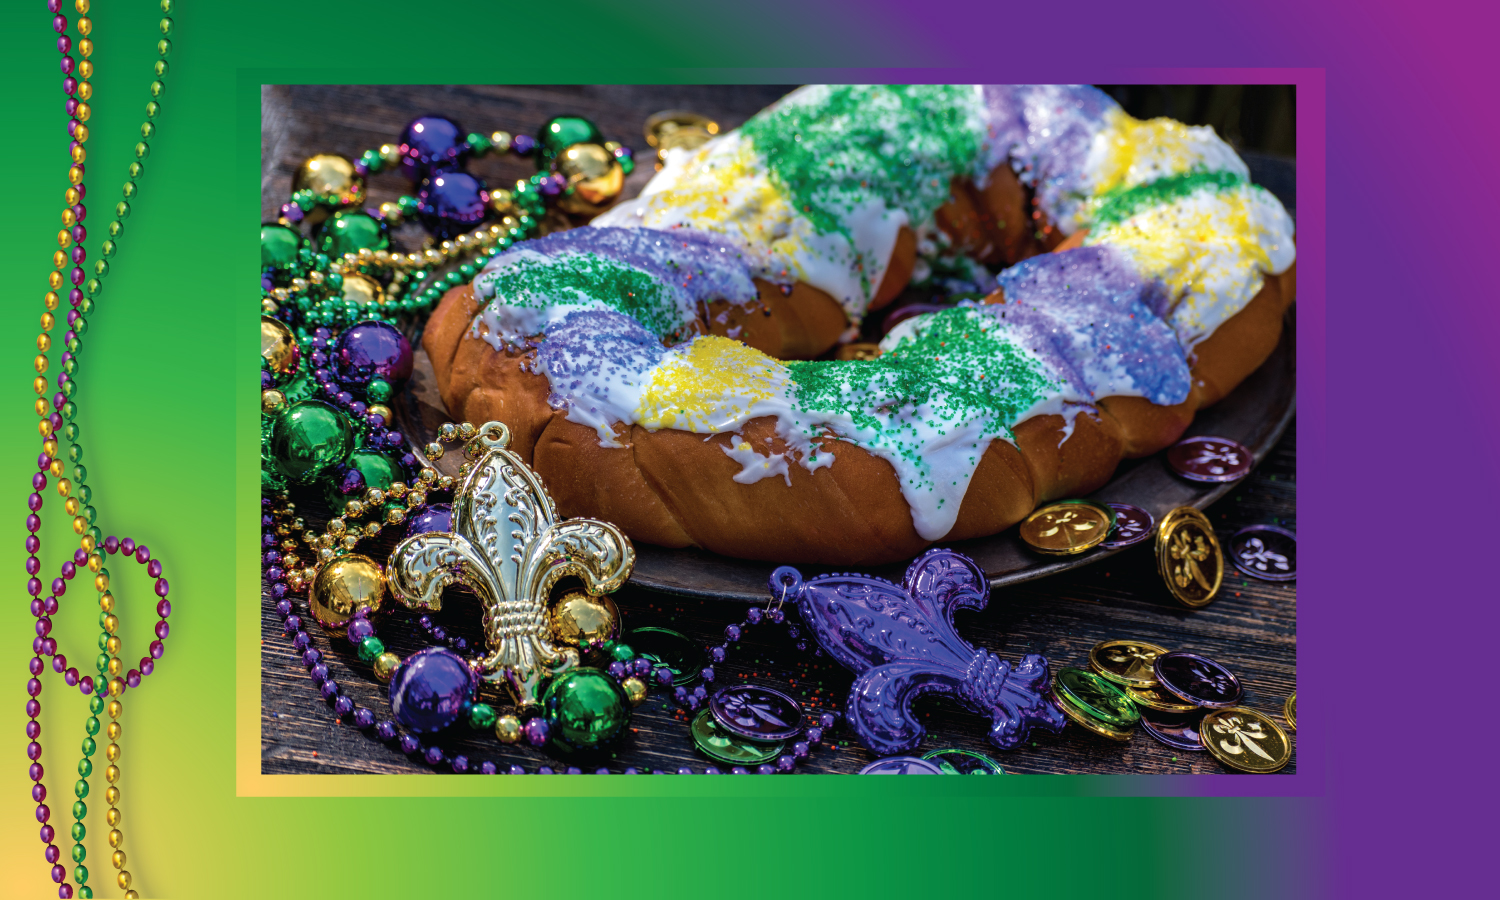 The Forge Bar and Grill King Cakes